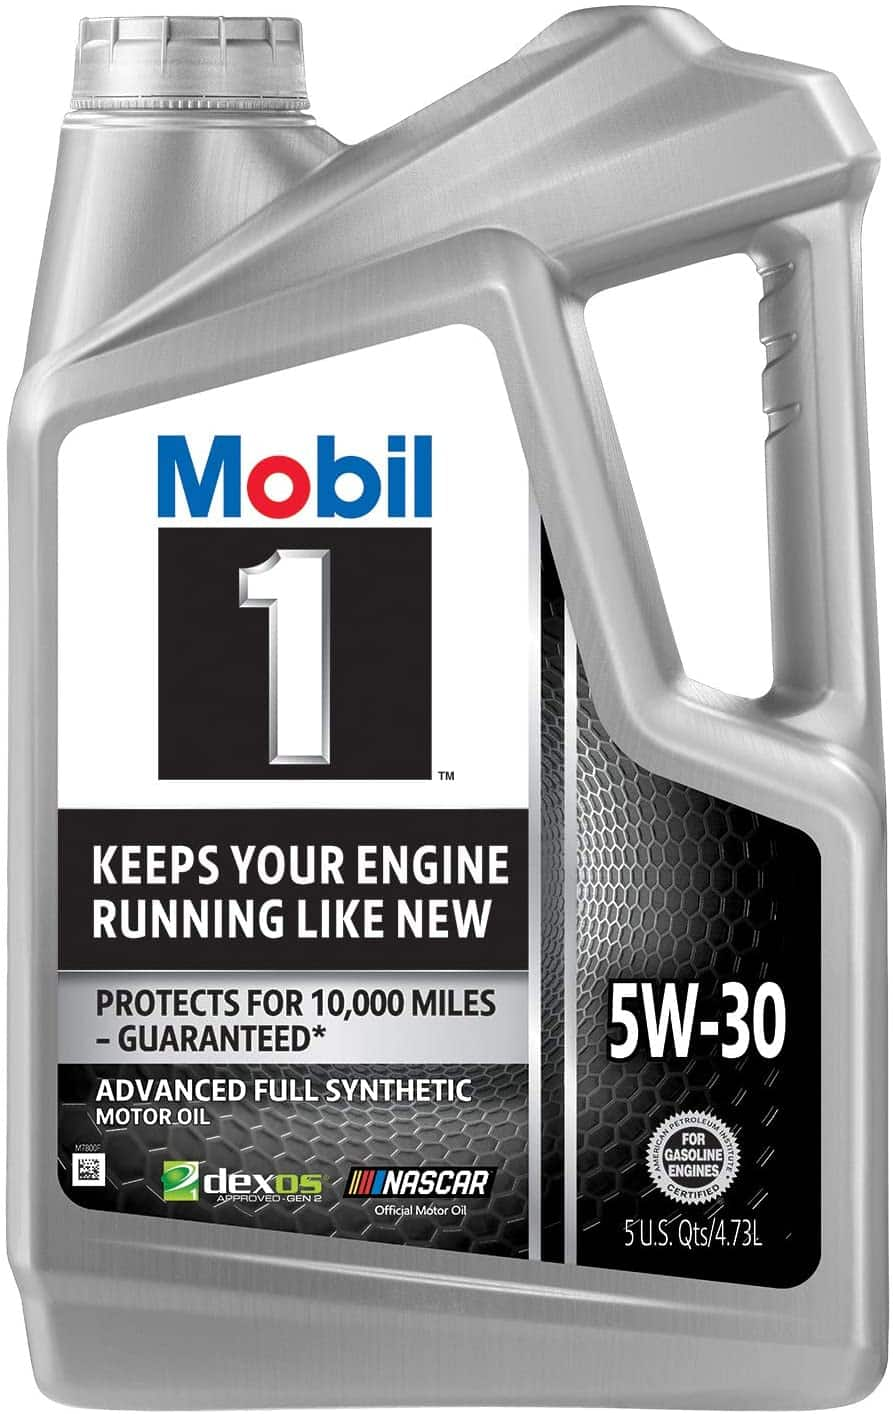 5-Qt 5W-30 Mobil 1 Synthetic Motor Oil (Various): Full Synthetic, High Mileage